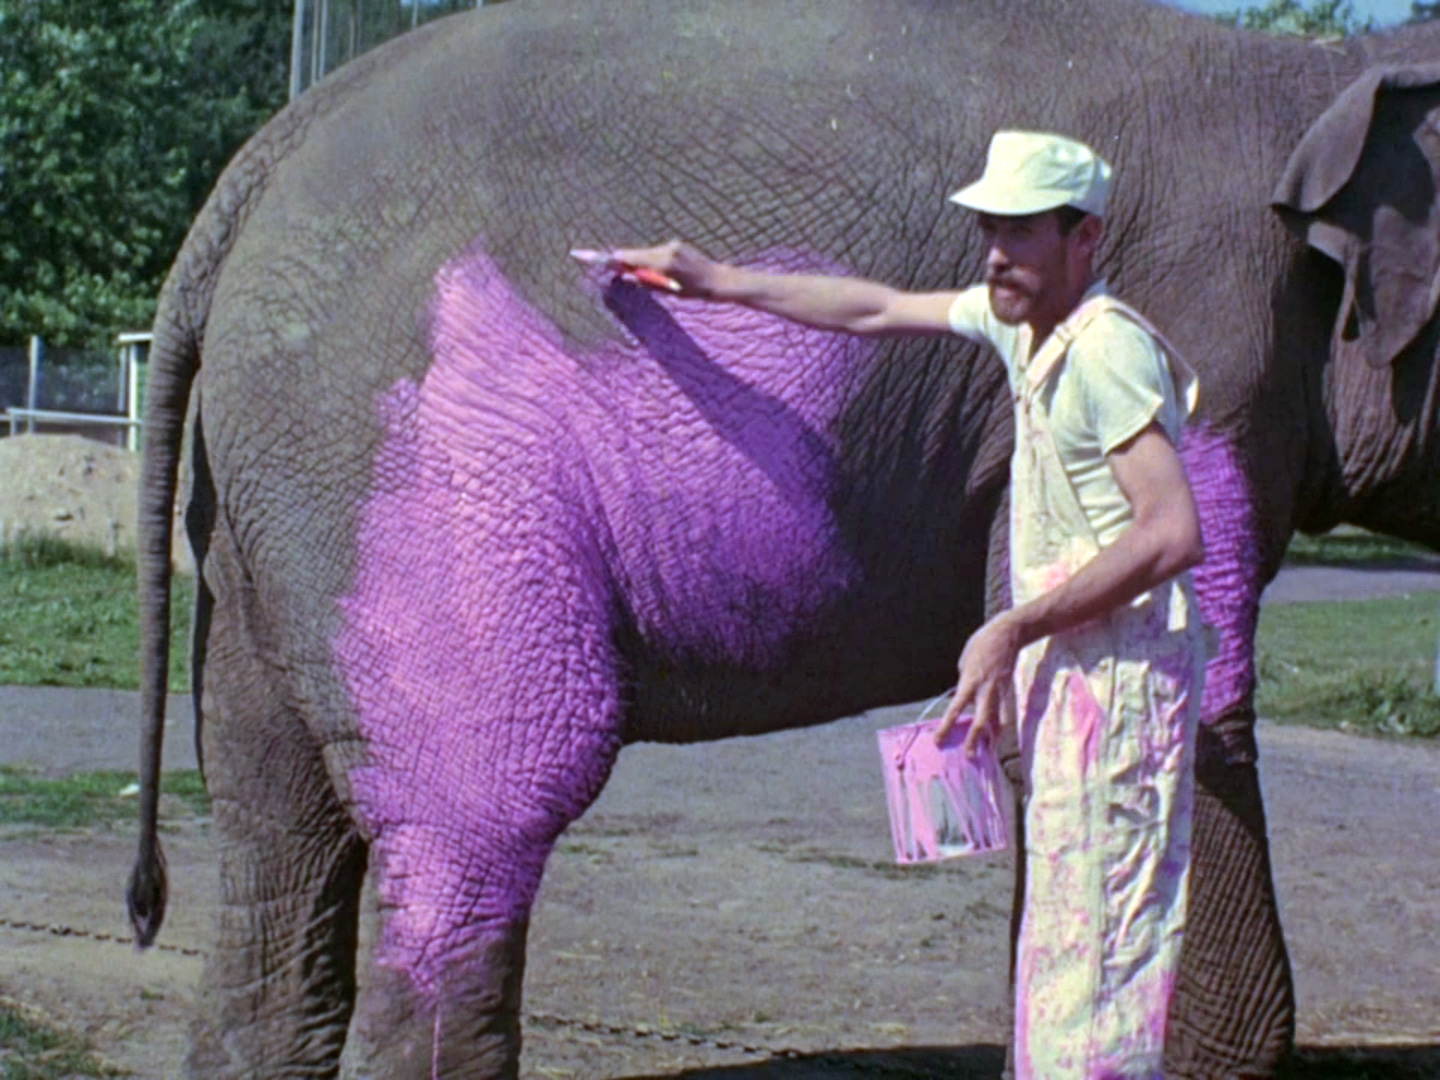 File:Pinkelephant.jpg